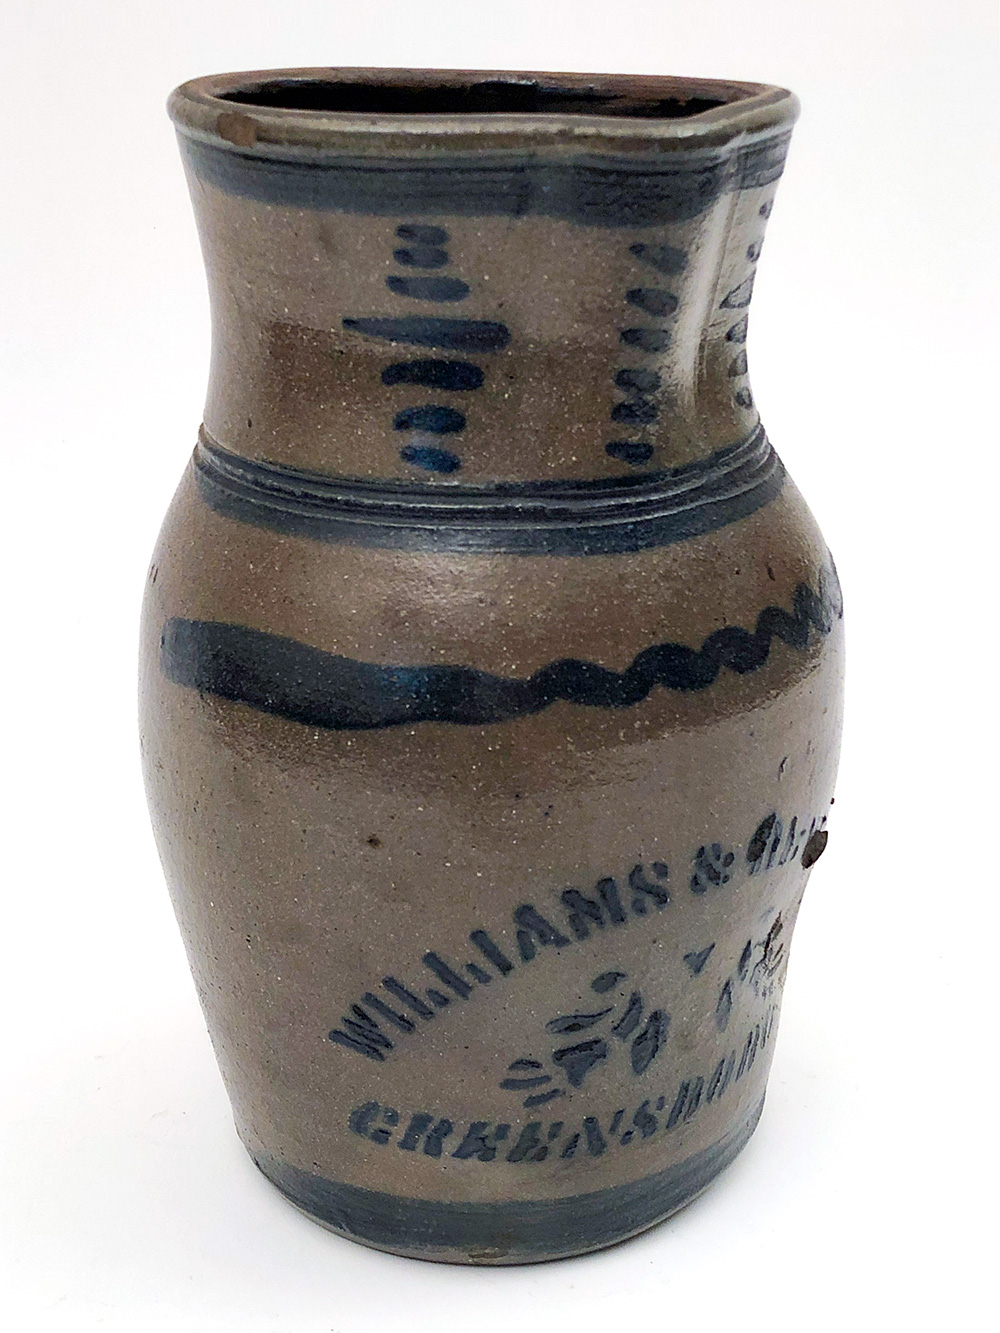 Greensboro Pennsylvania Blue Decorated Stoneware Pitccher Williams and Reppert